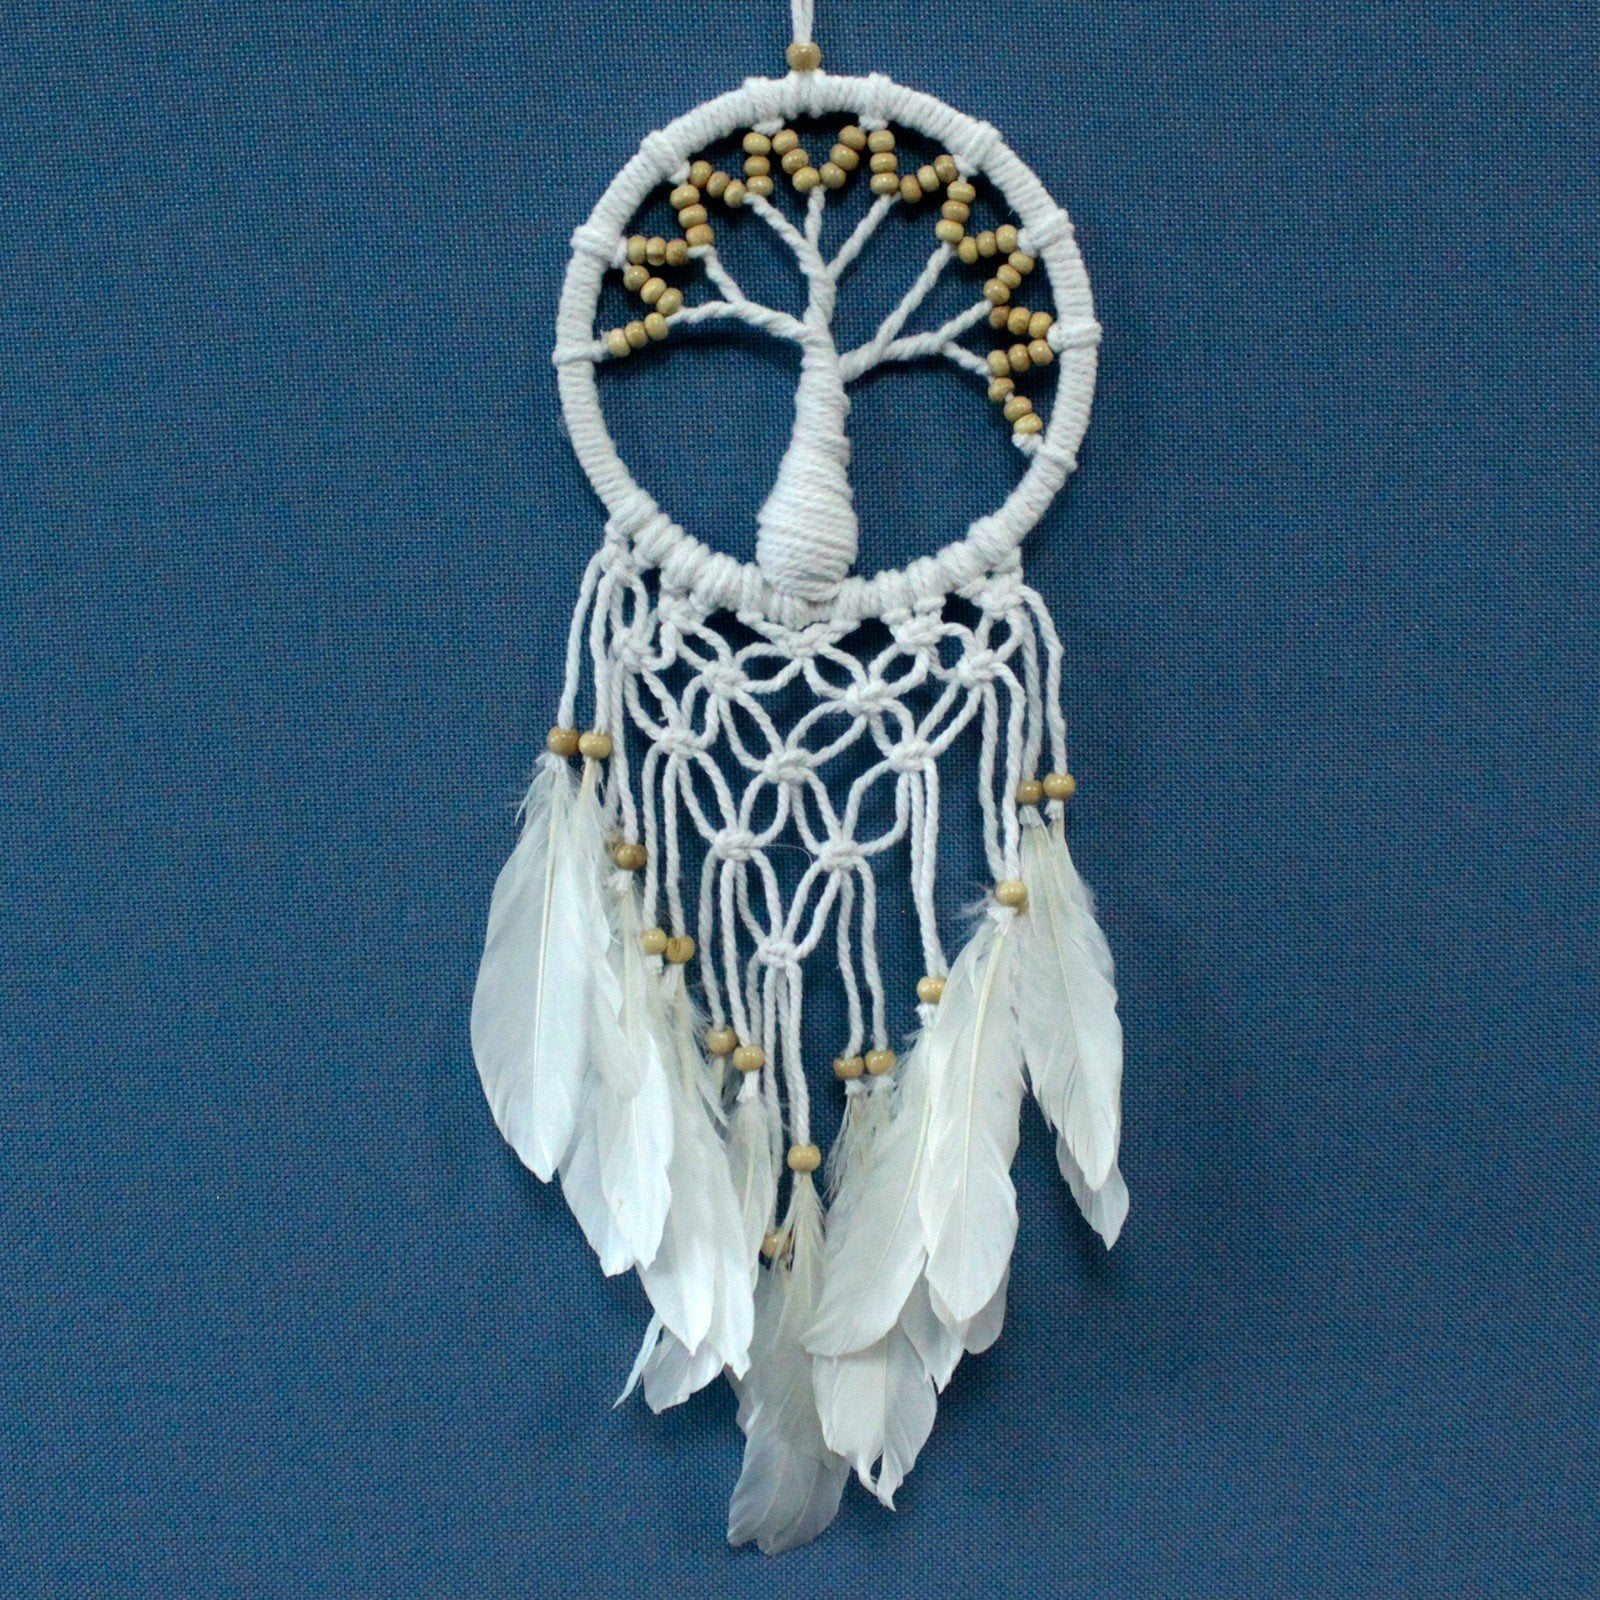 Hand Made Tree of Life Macrame Dreamcatcher - Diameter 16cm, Length 60cm